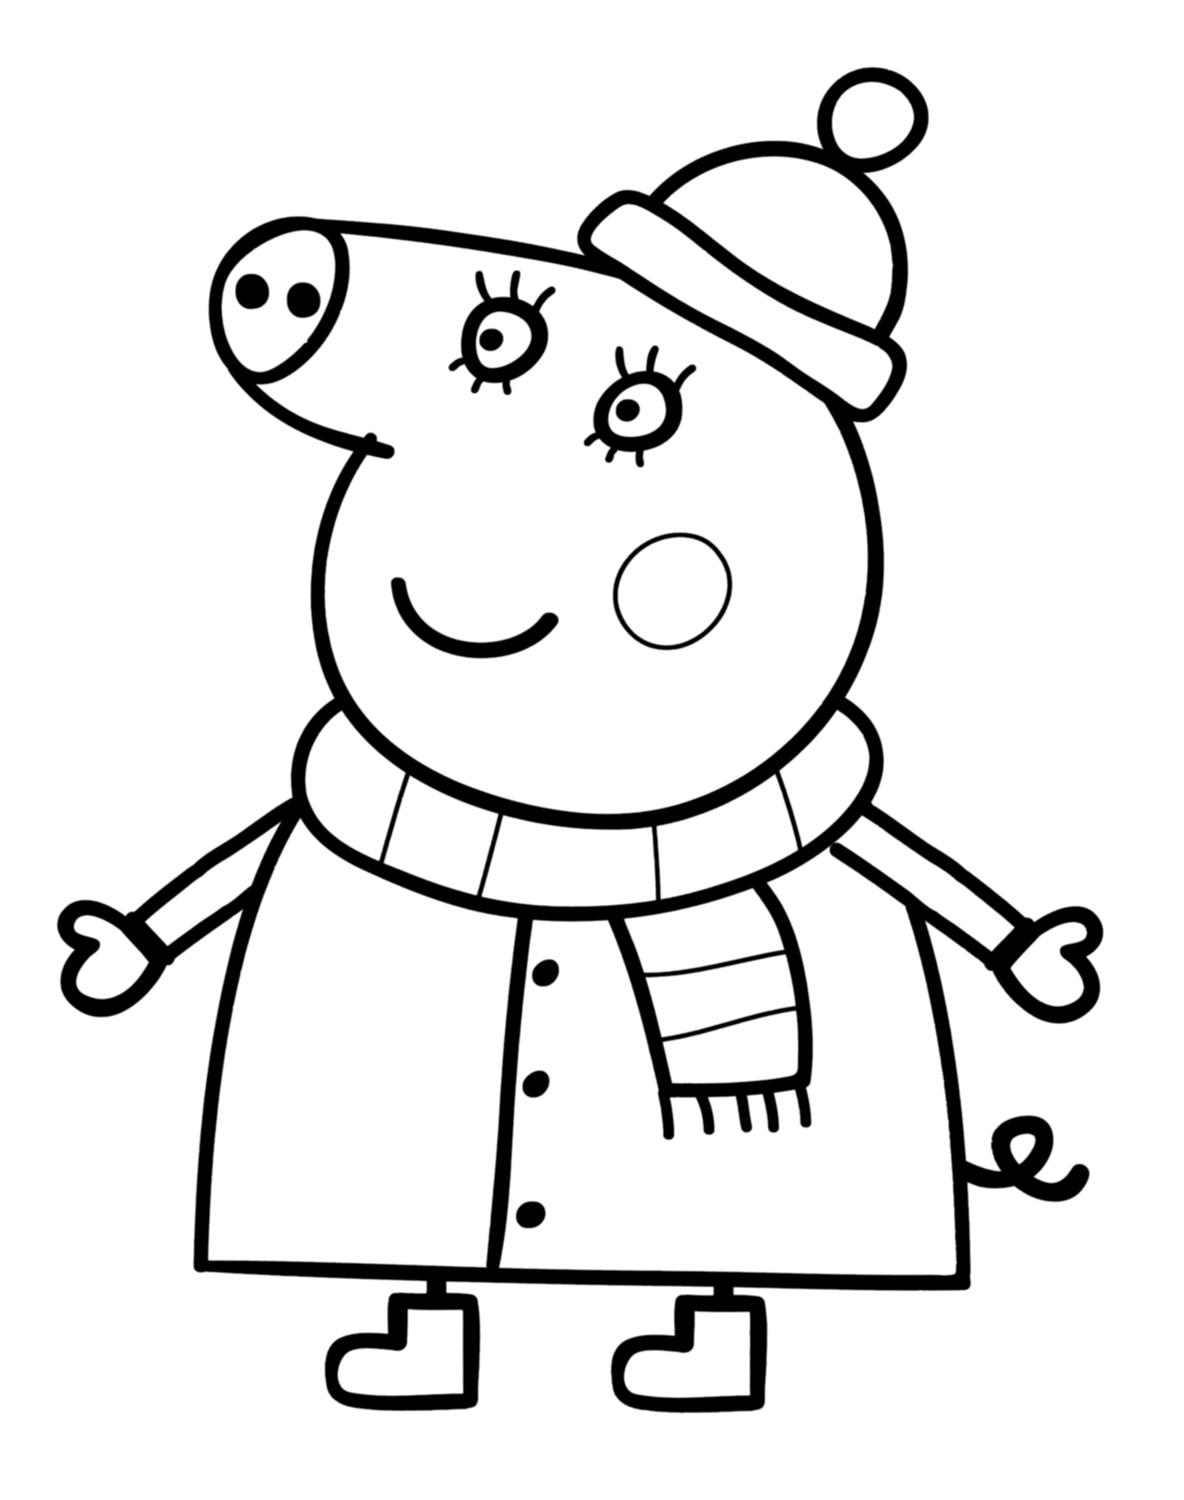 Image Peppa Pig A Imprimer Beau Collection Coloriage Peppa Pig   Colorier Dessin   Imprimer